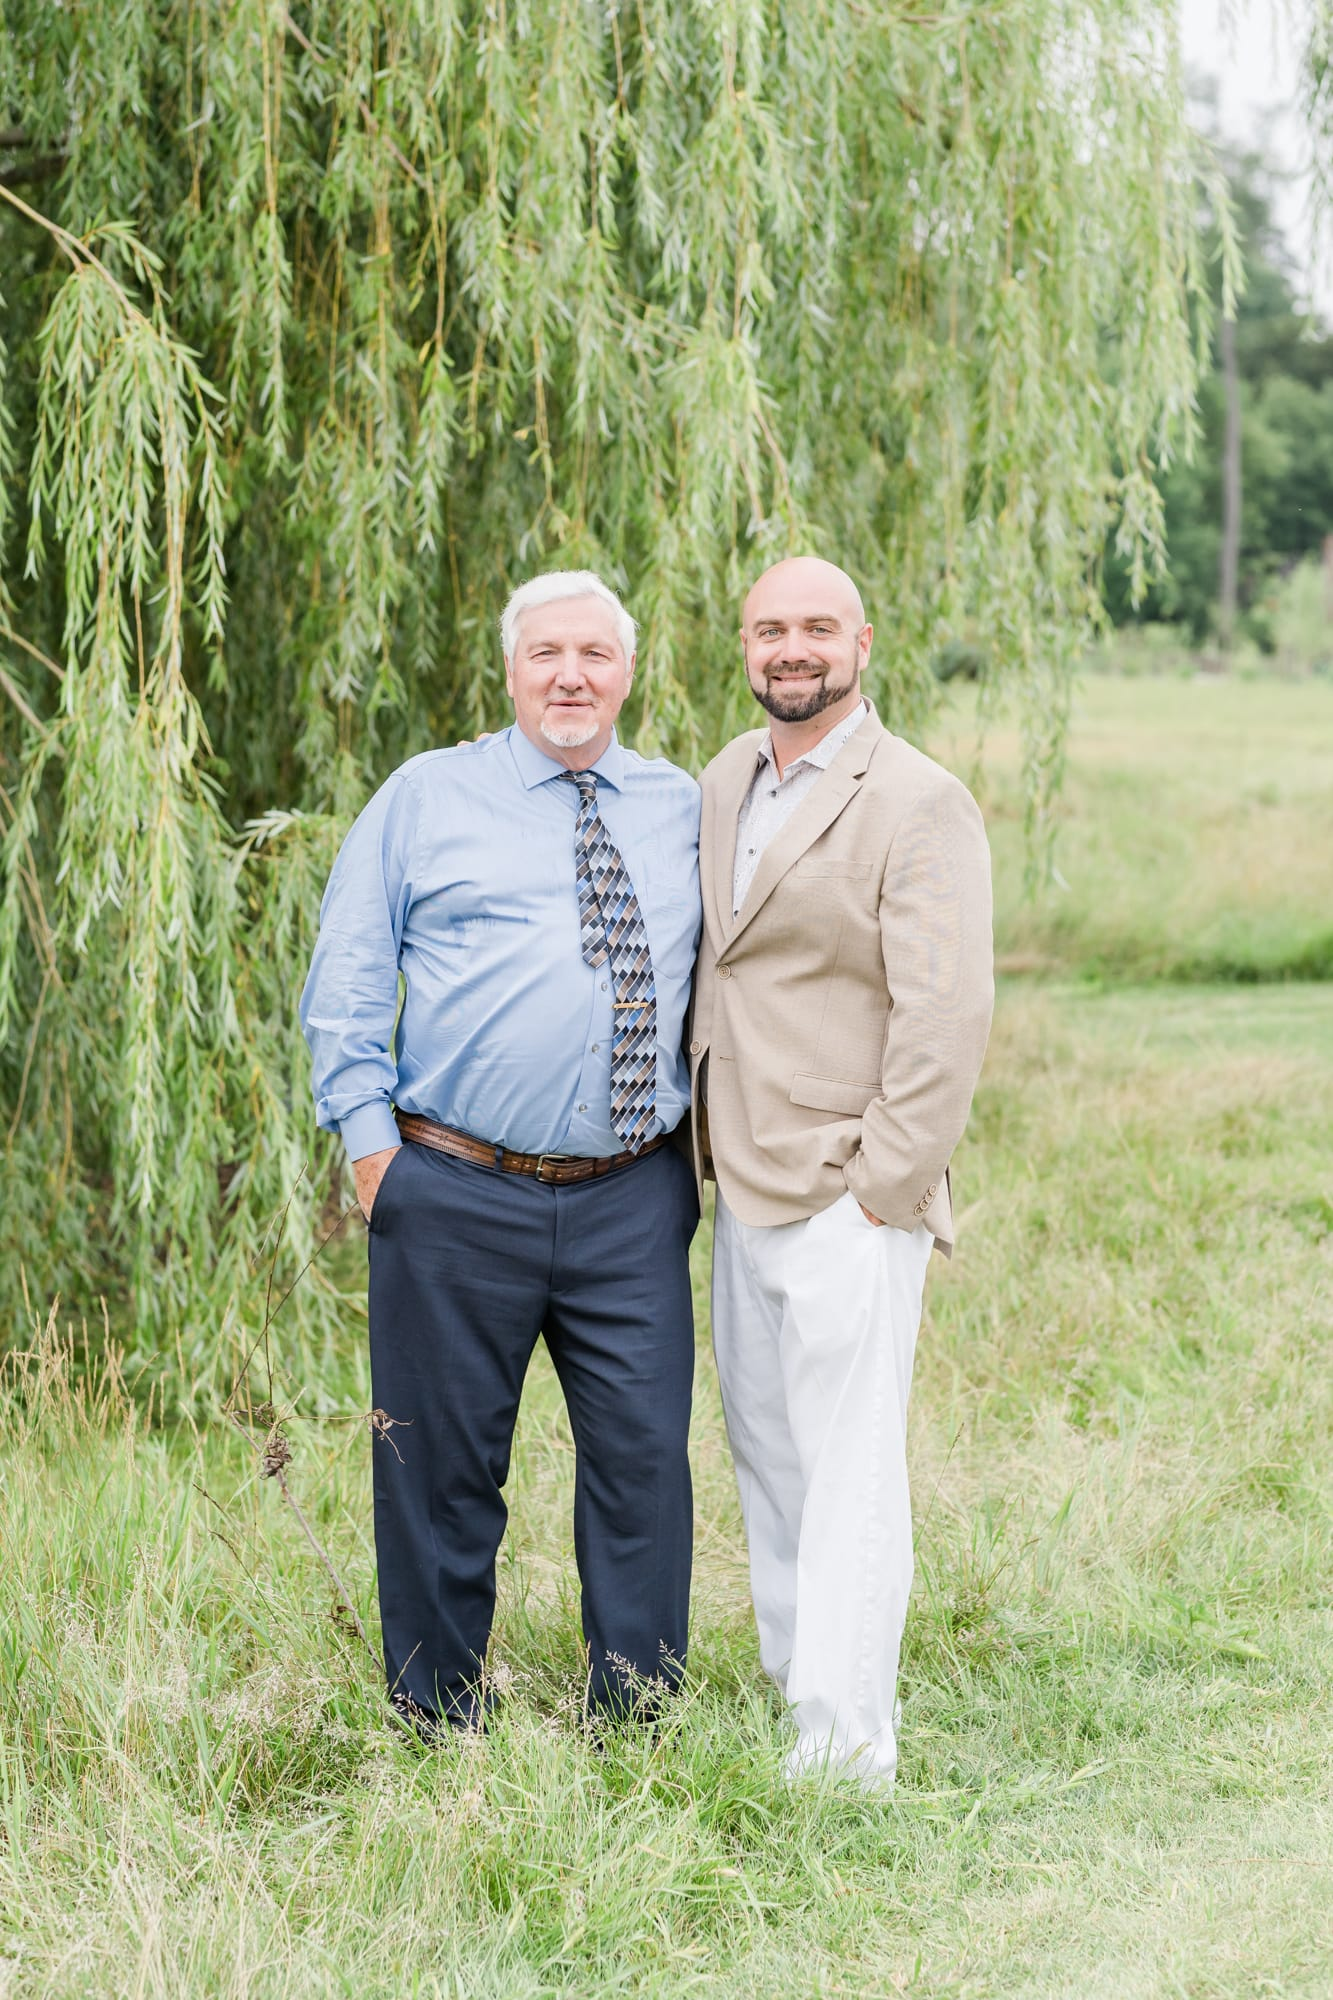 Father and son portrait at Penn State arboretum